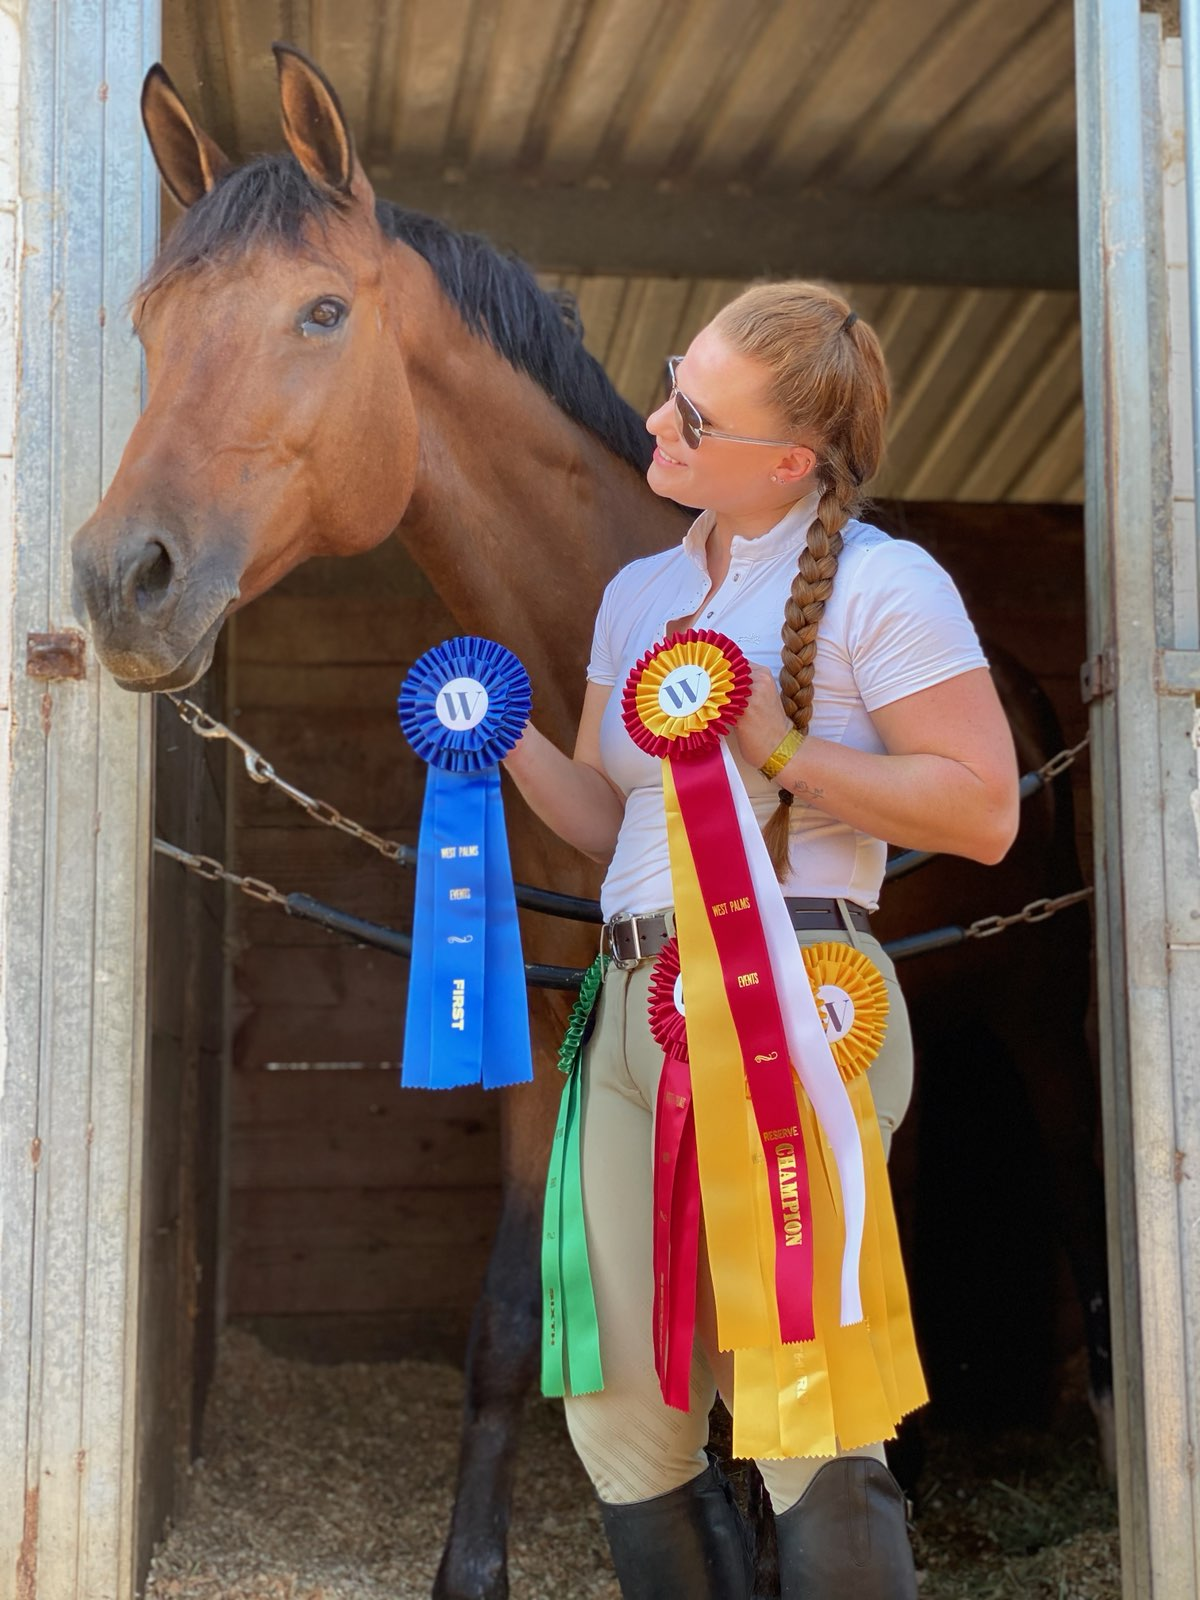 Allie with ribbons